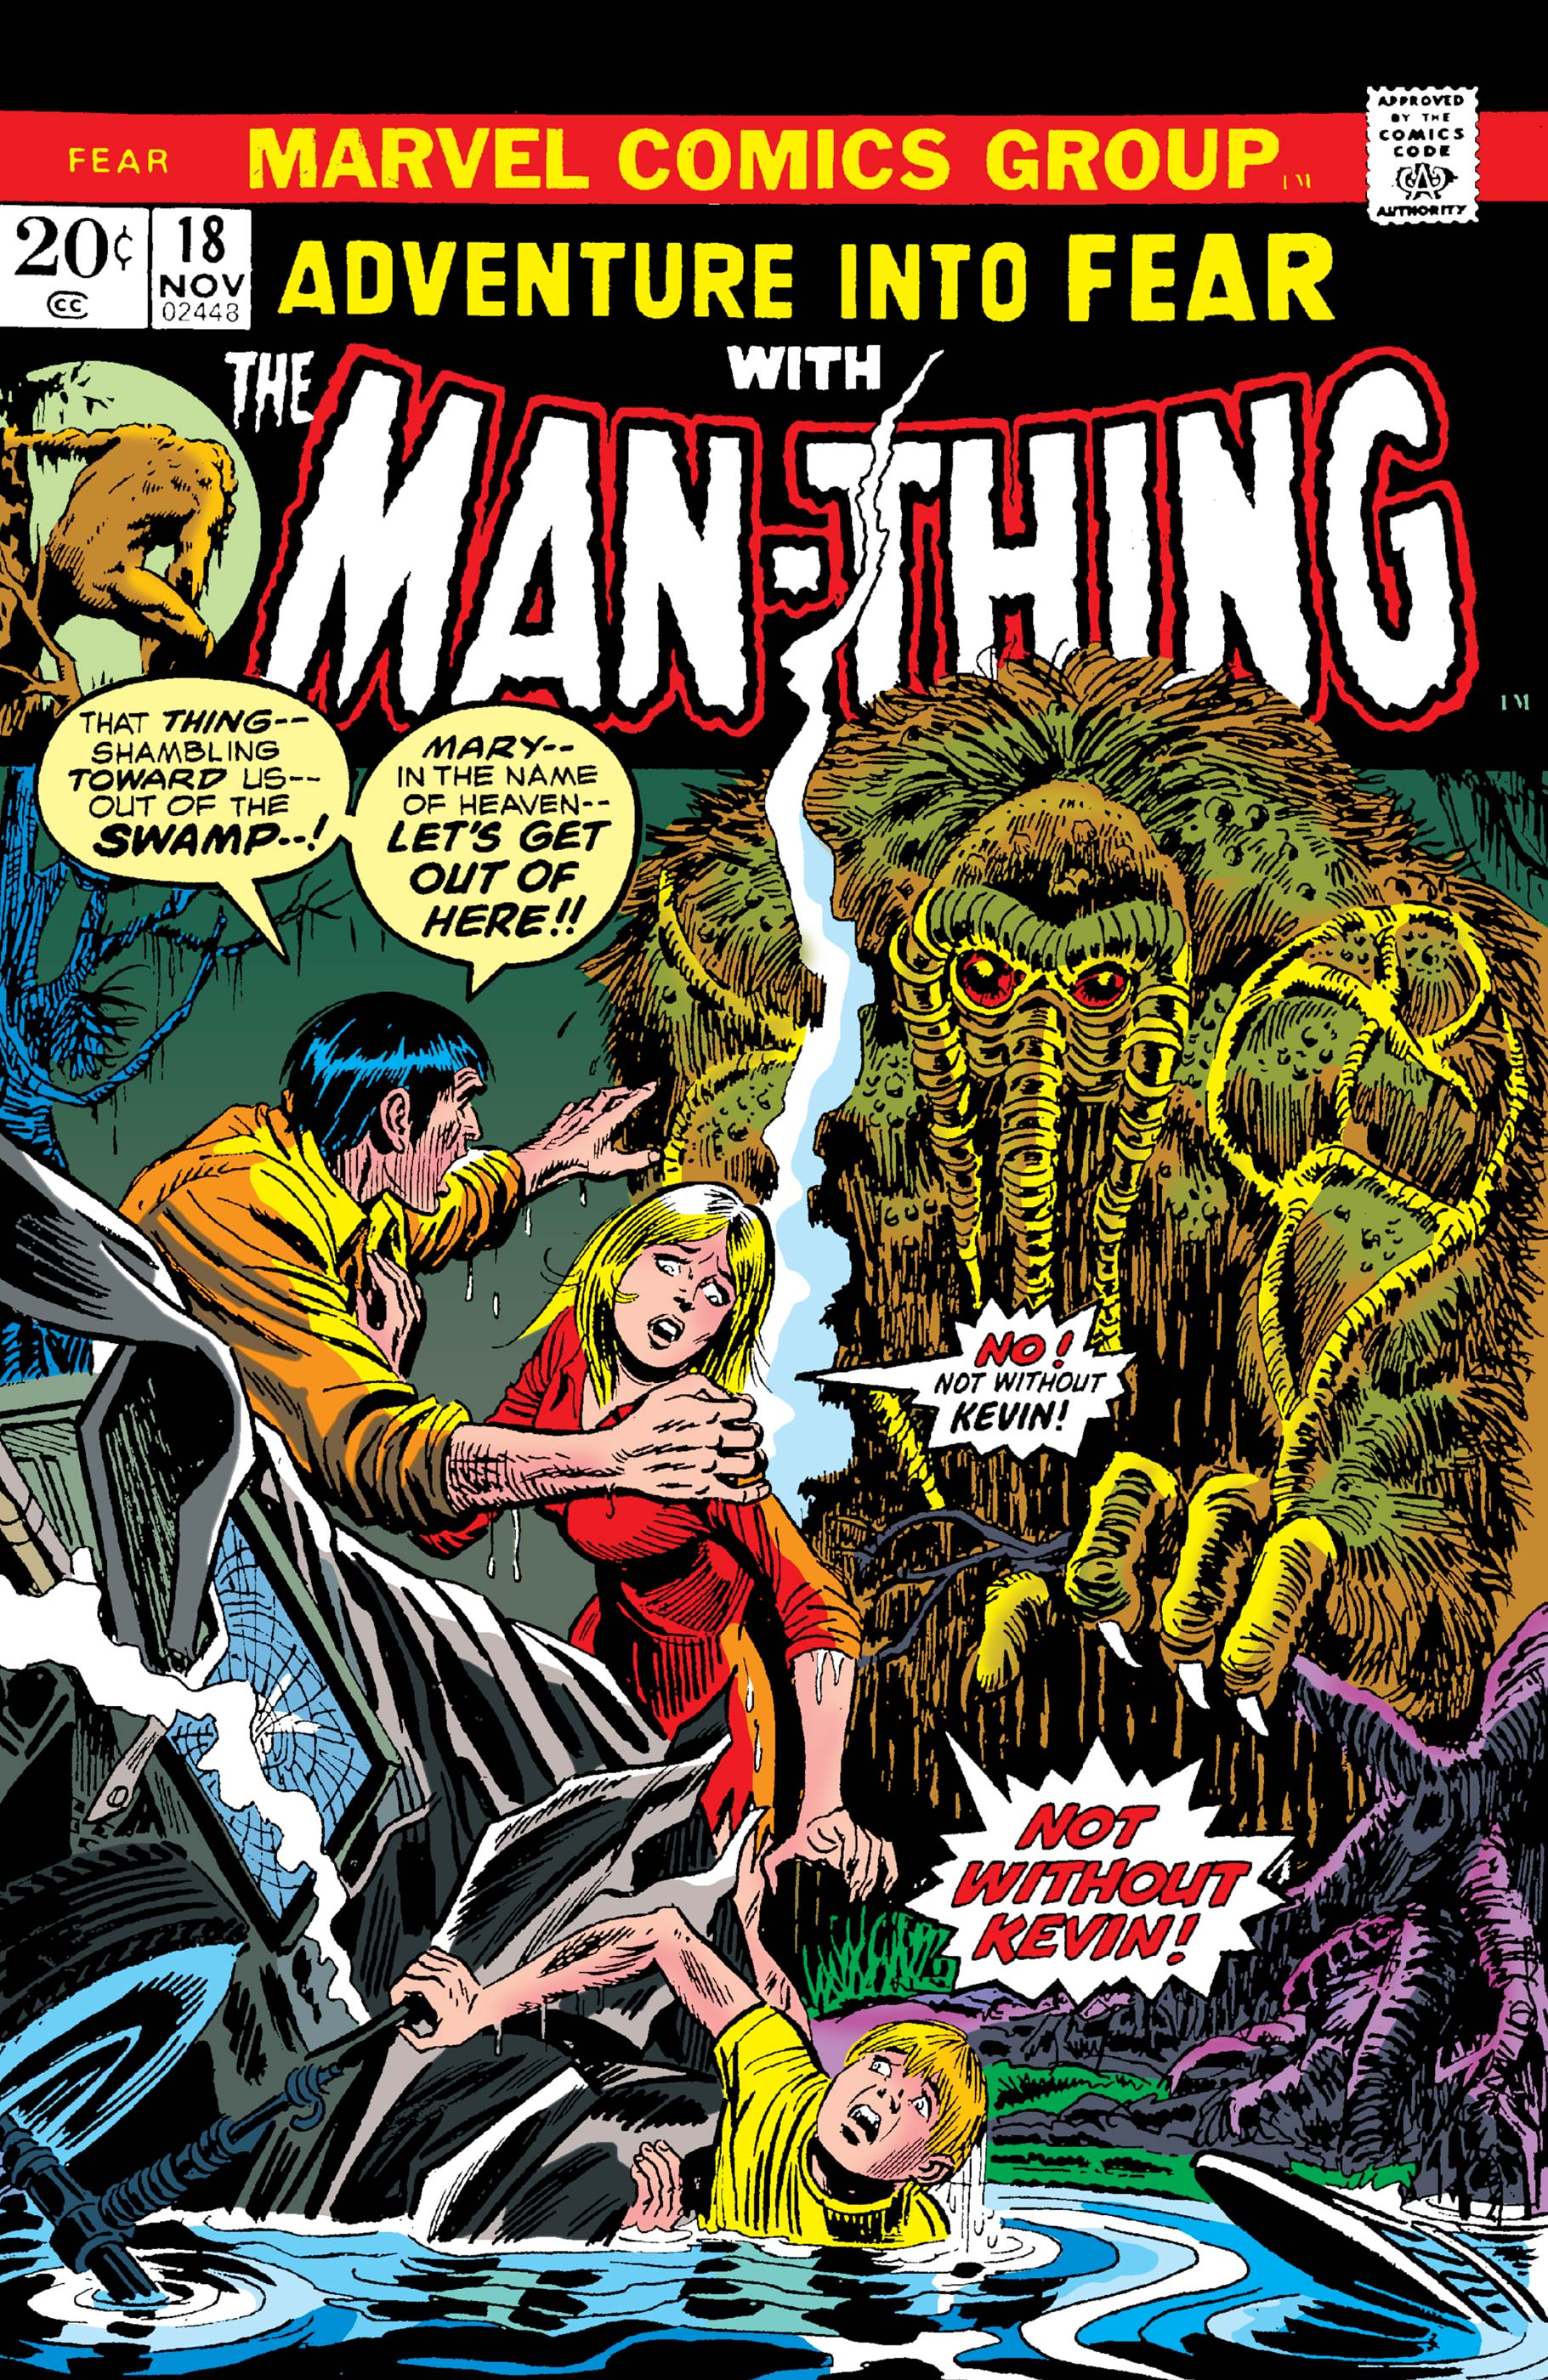 Adventures Into Fear (1970) #18